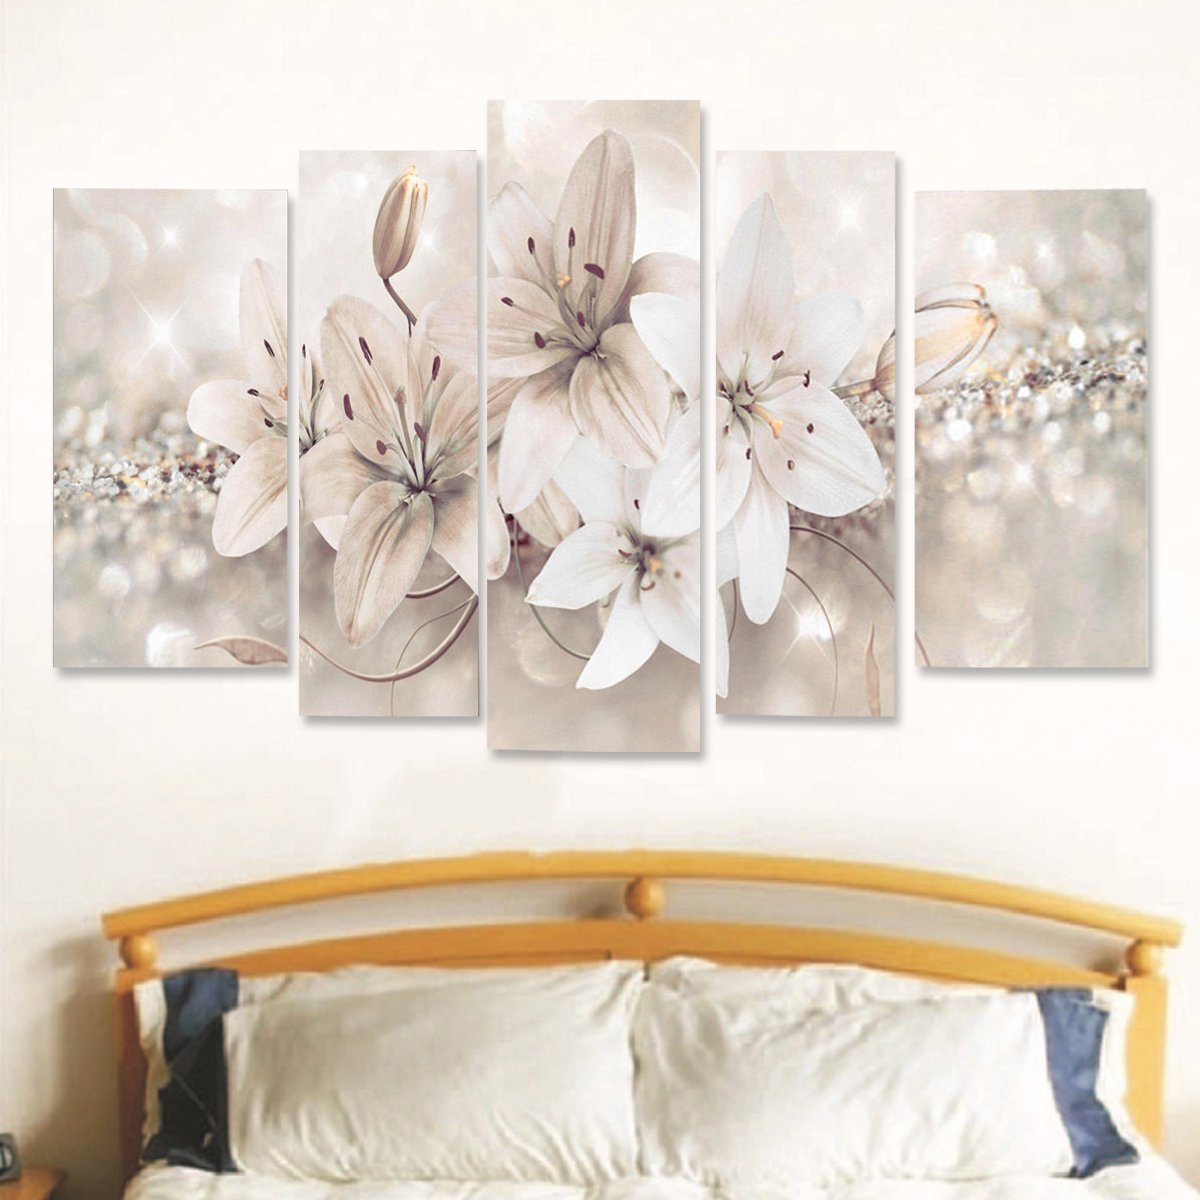 5pcs Modern Abstract Flower Canvas Painting Print Picture Wall Art